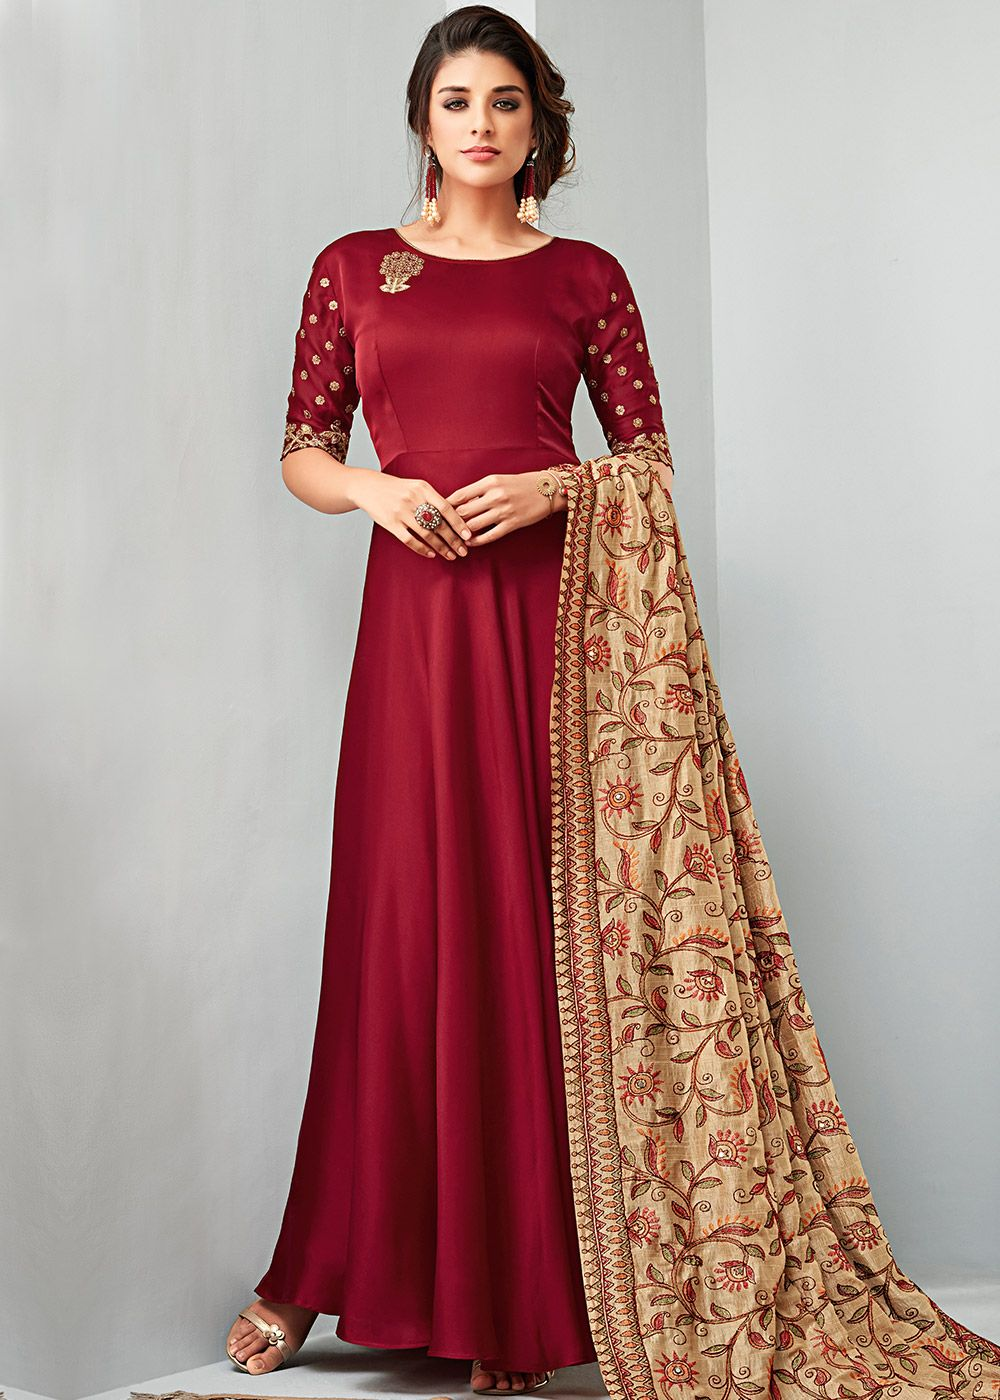 da511bd3b3 ... maroon georgette satin flared kameez crafted with minimal zari  embroidery and stone work. Also comes with beige art silk thread embroidered  dupatta.